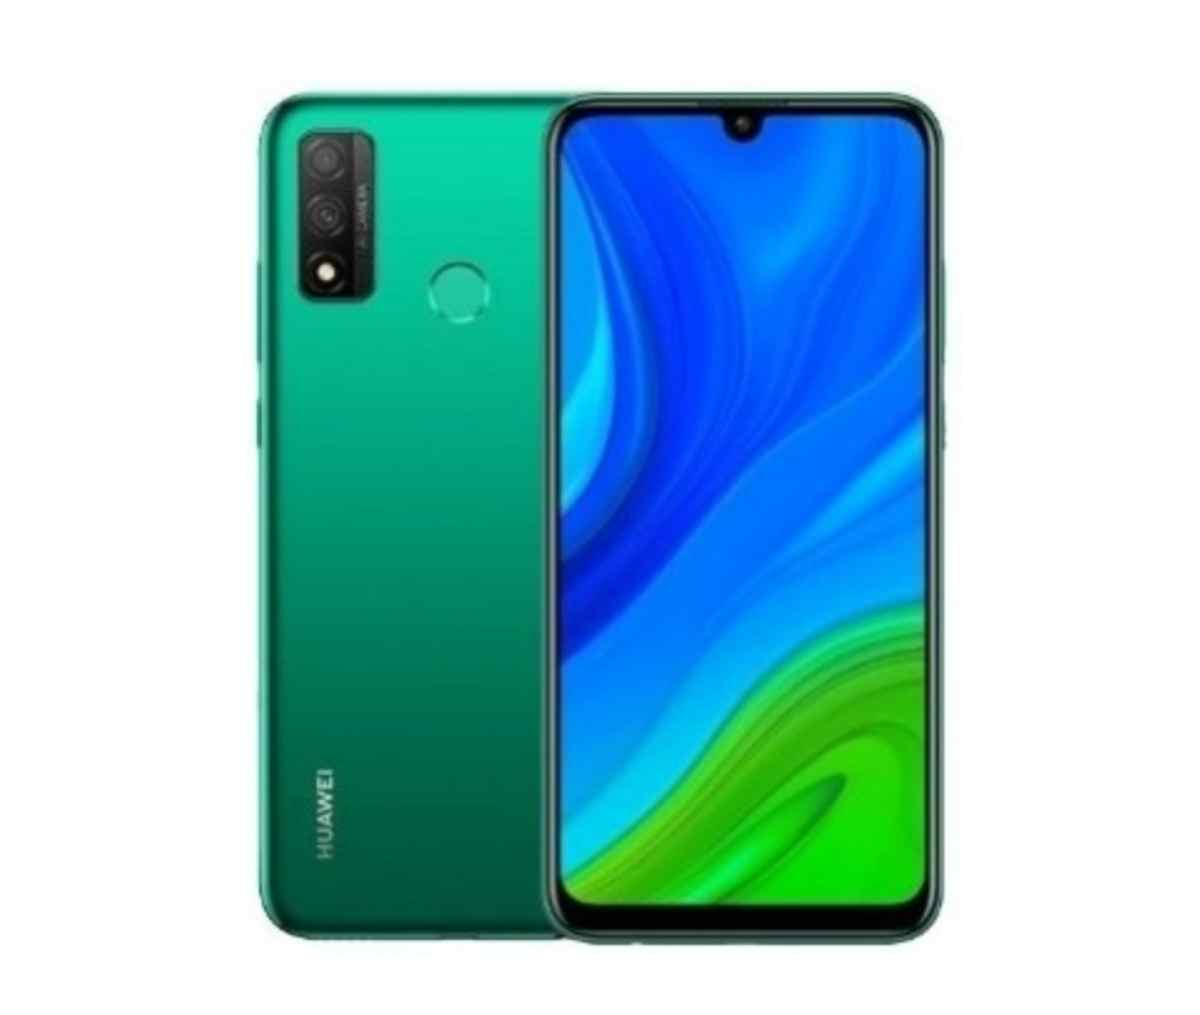 huawei p smart 2020, p smart 2020, Huawei p smart 2020 price in Nigeria, price of Huawei p smart 2020, huawei p smart 2020 specs and price in Nigeria, how much is huawei p smart 2020, P smart 2020 price, huawei p smart 2020 specs, huawei p smart 2020 full specification